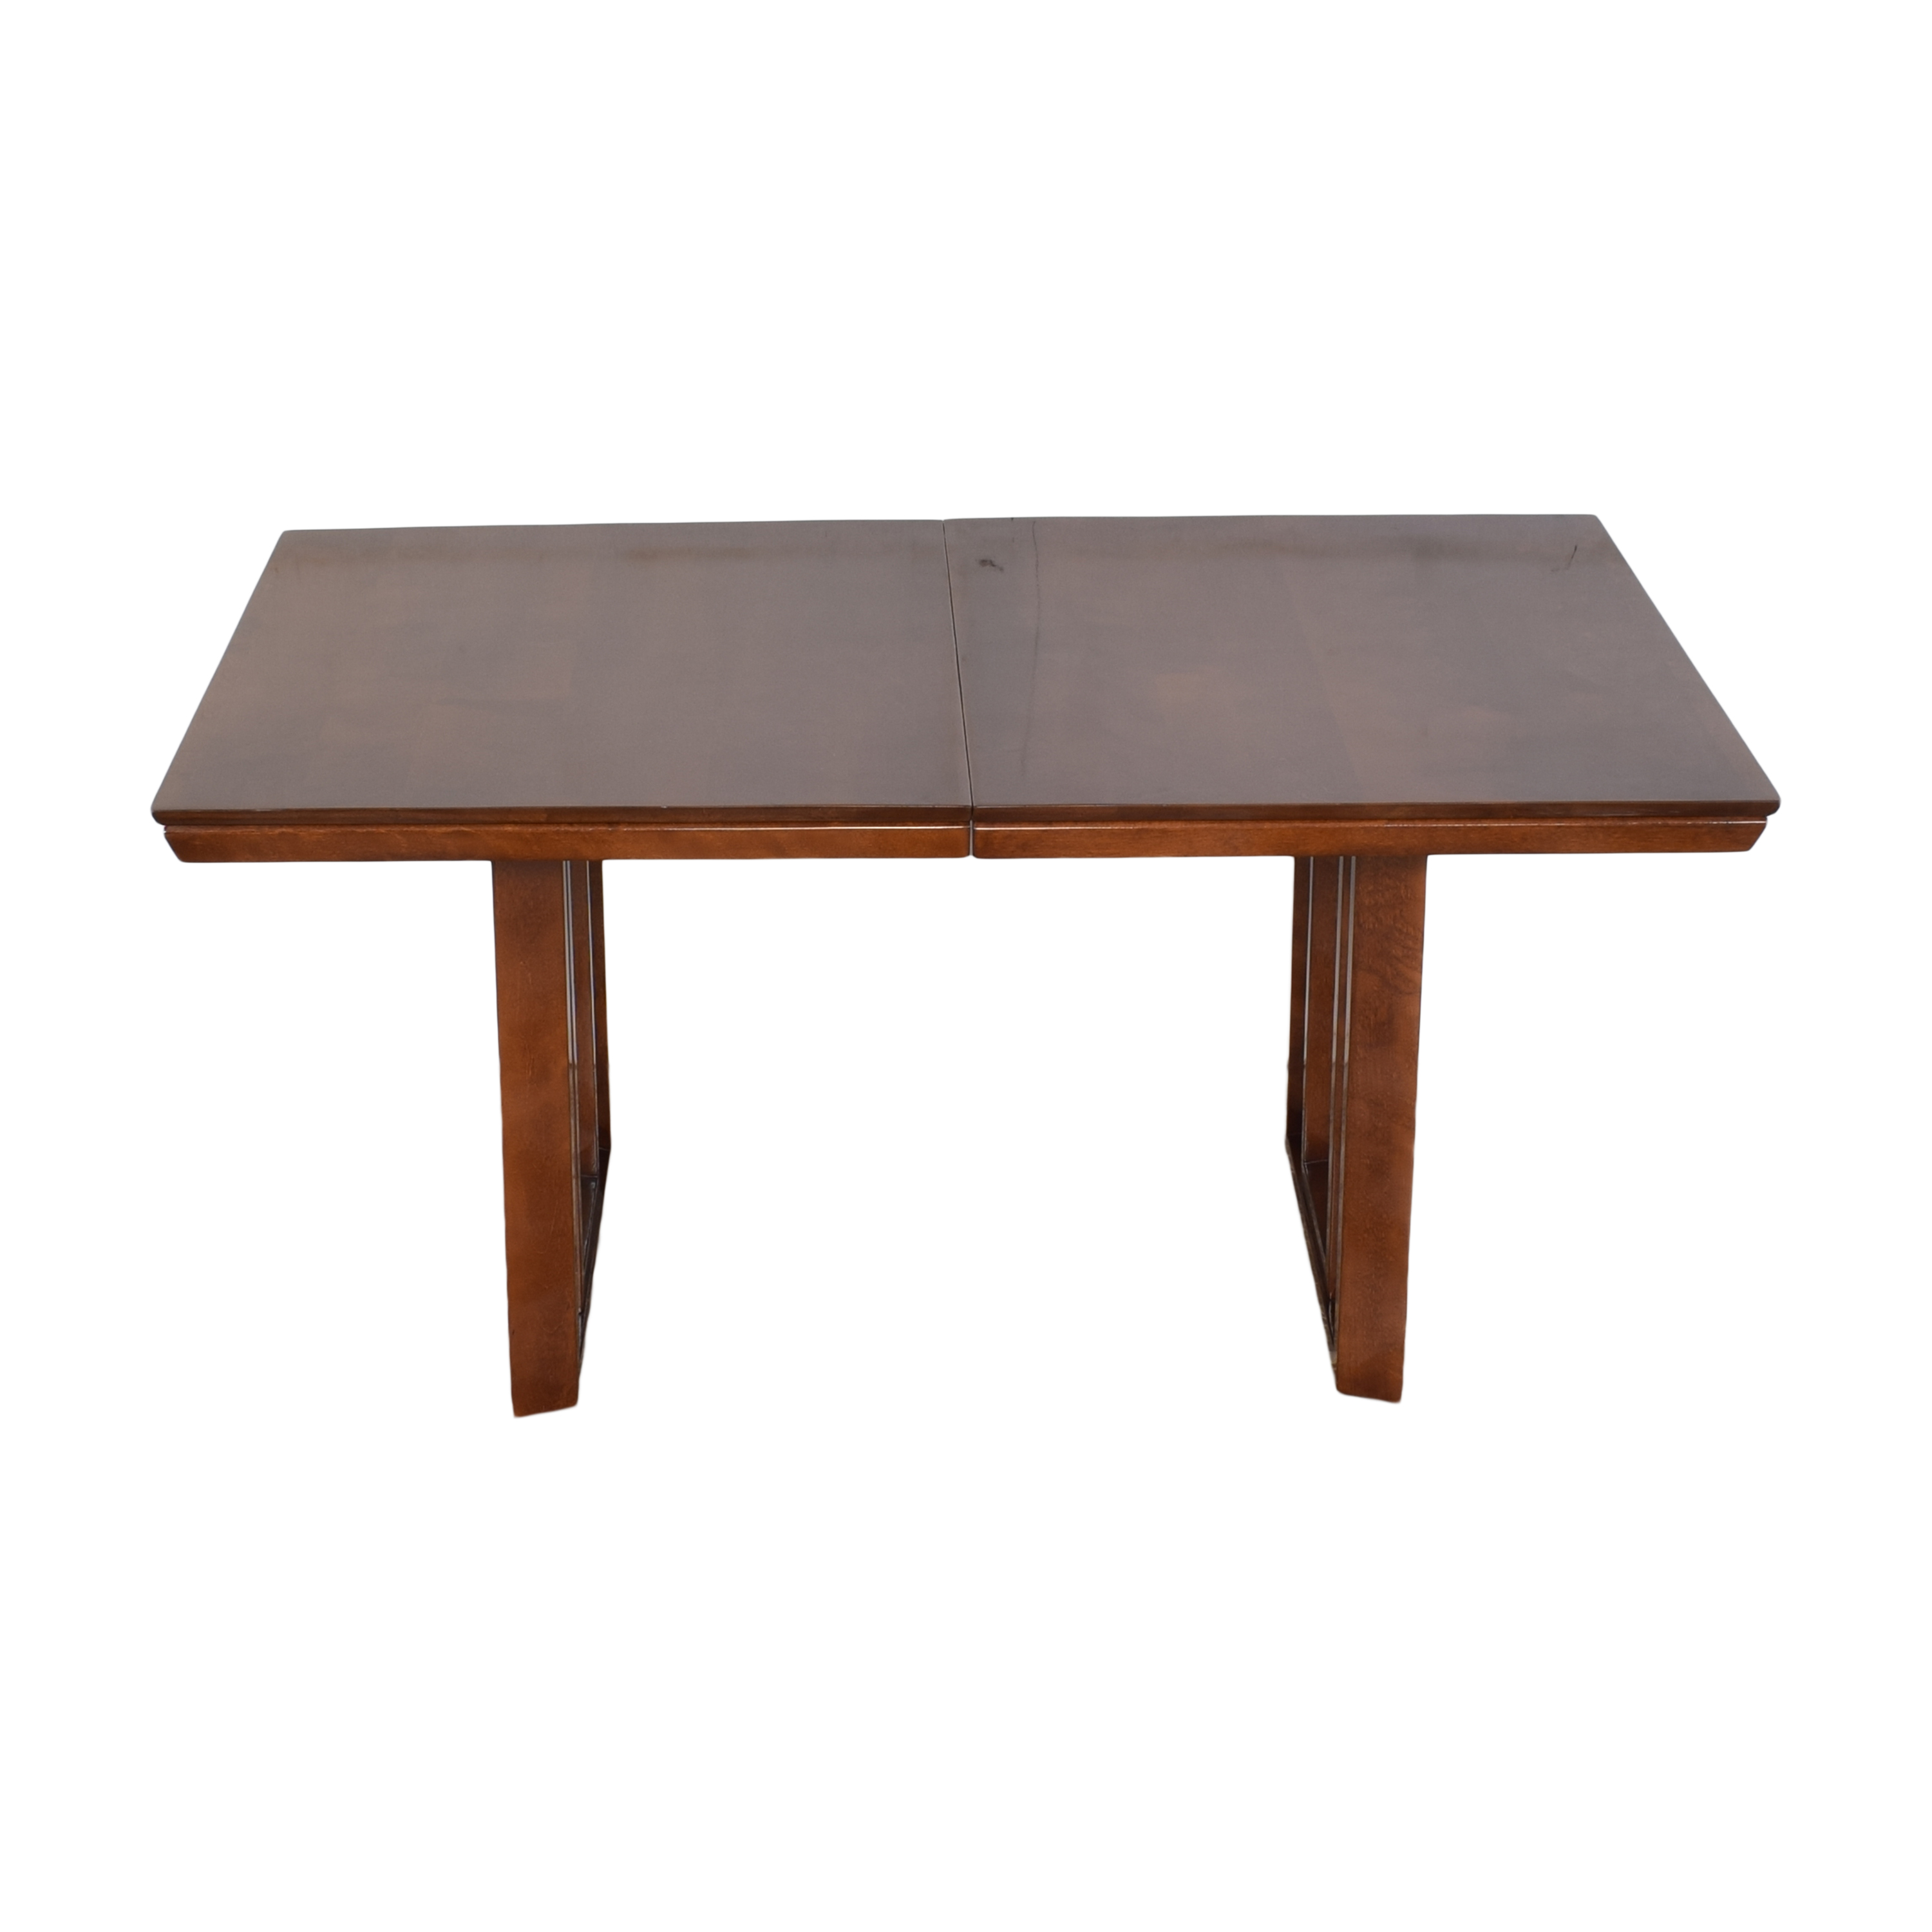 Conant Ball Conant Ball Expandable Dining Table discount